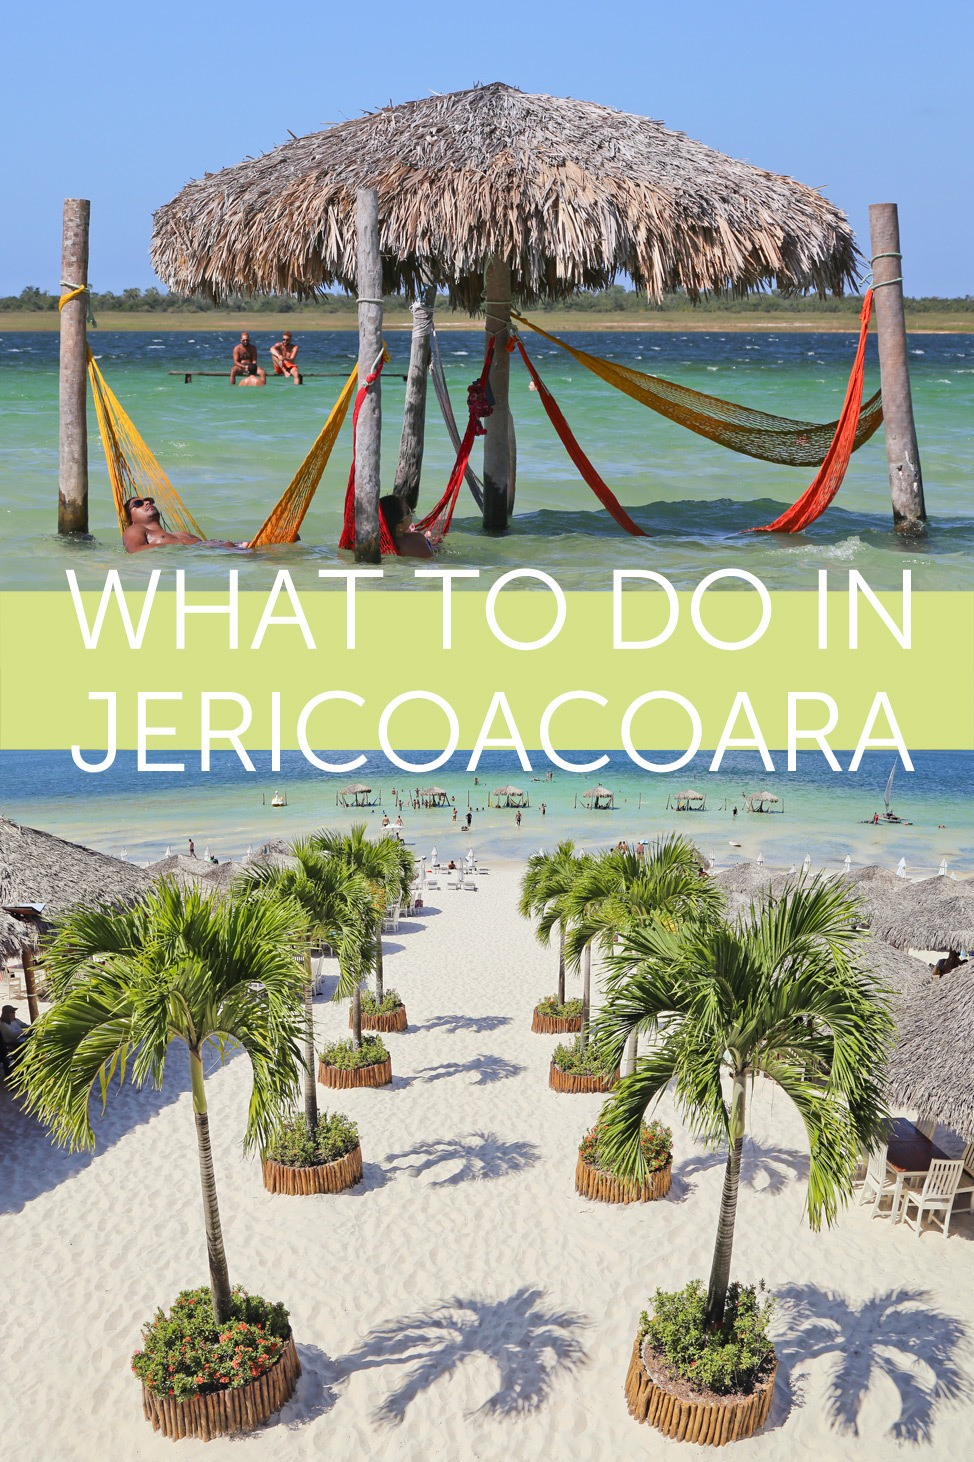 What to Do in Jericoacoara